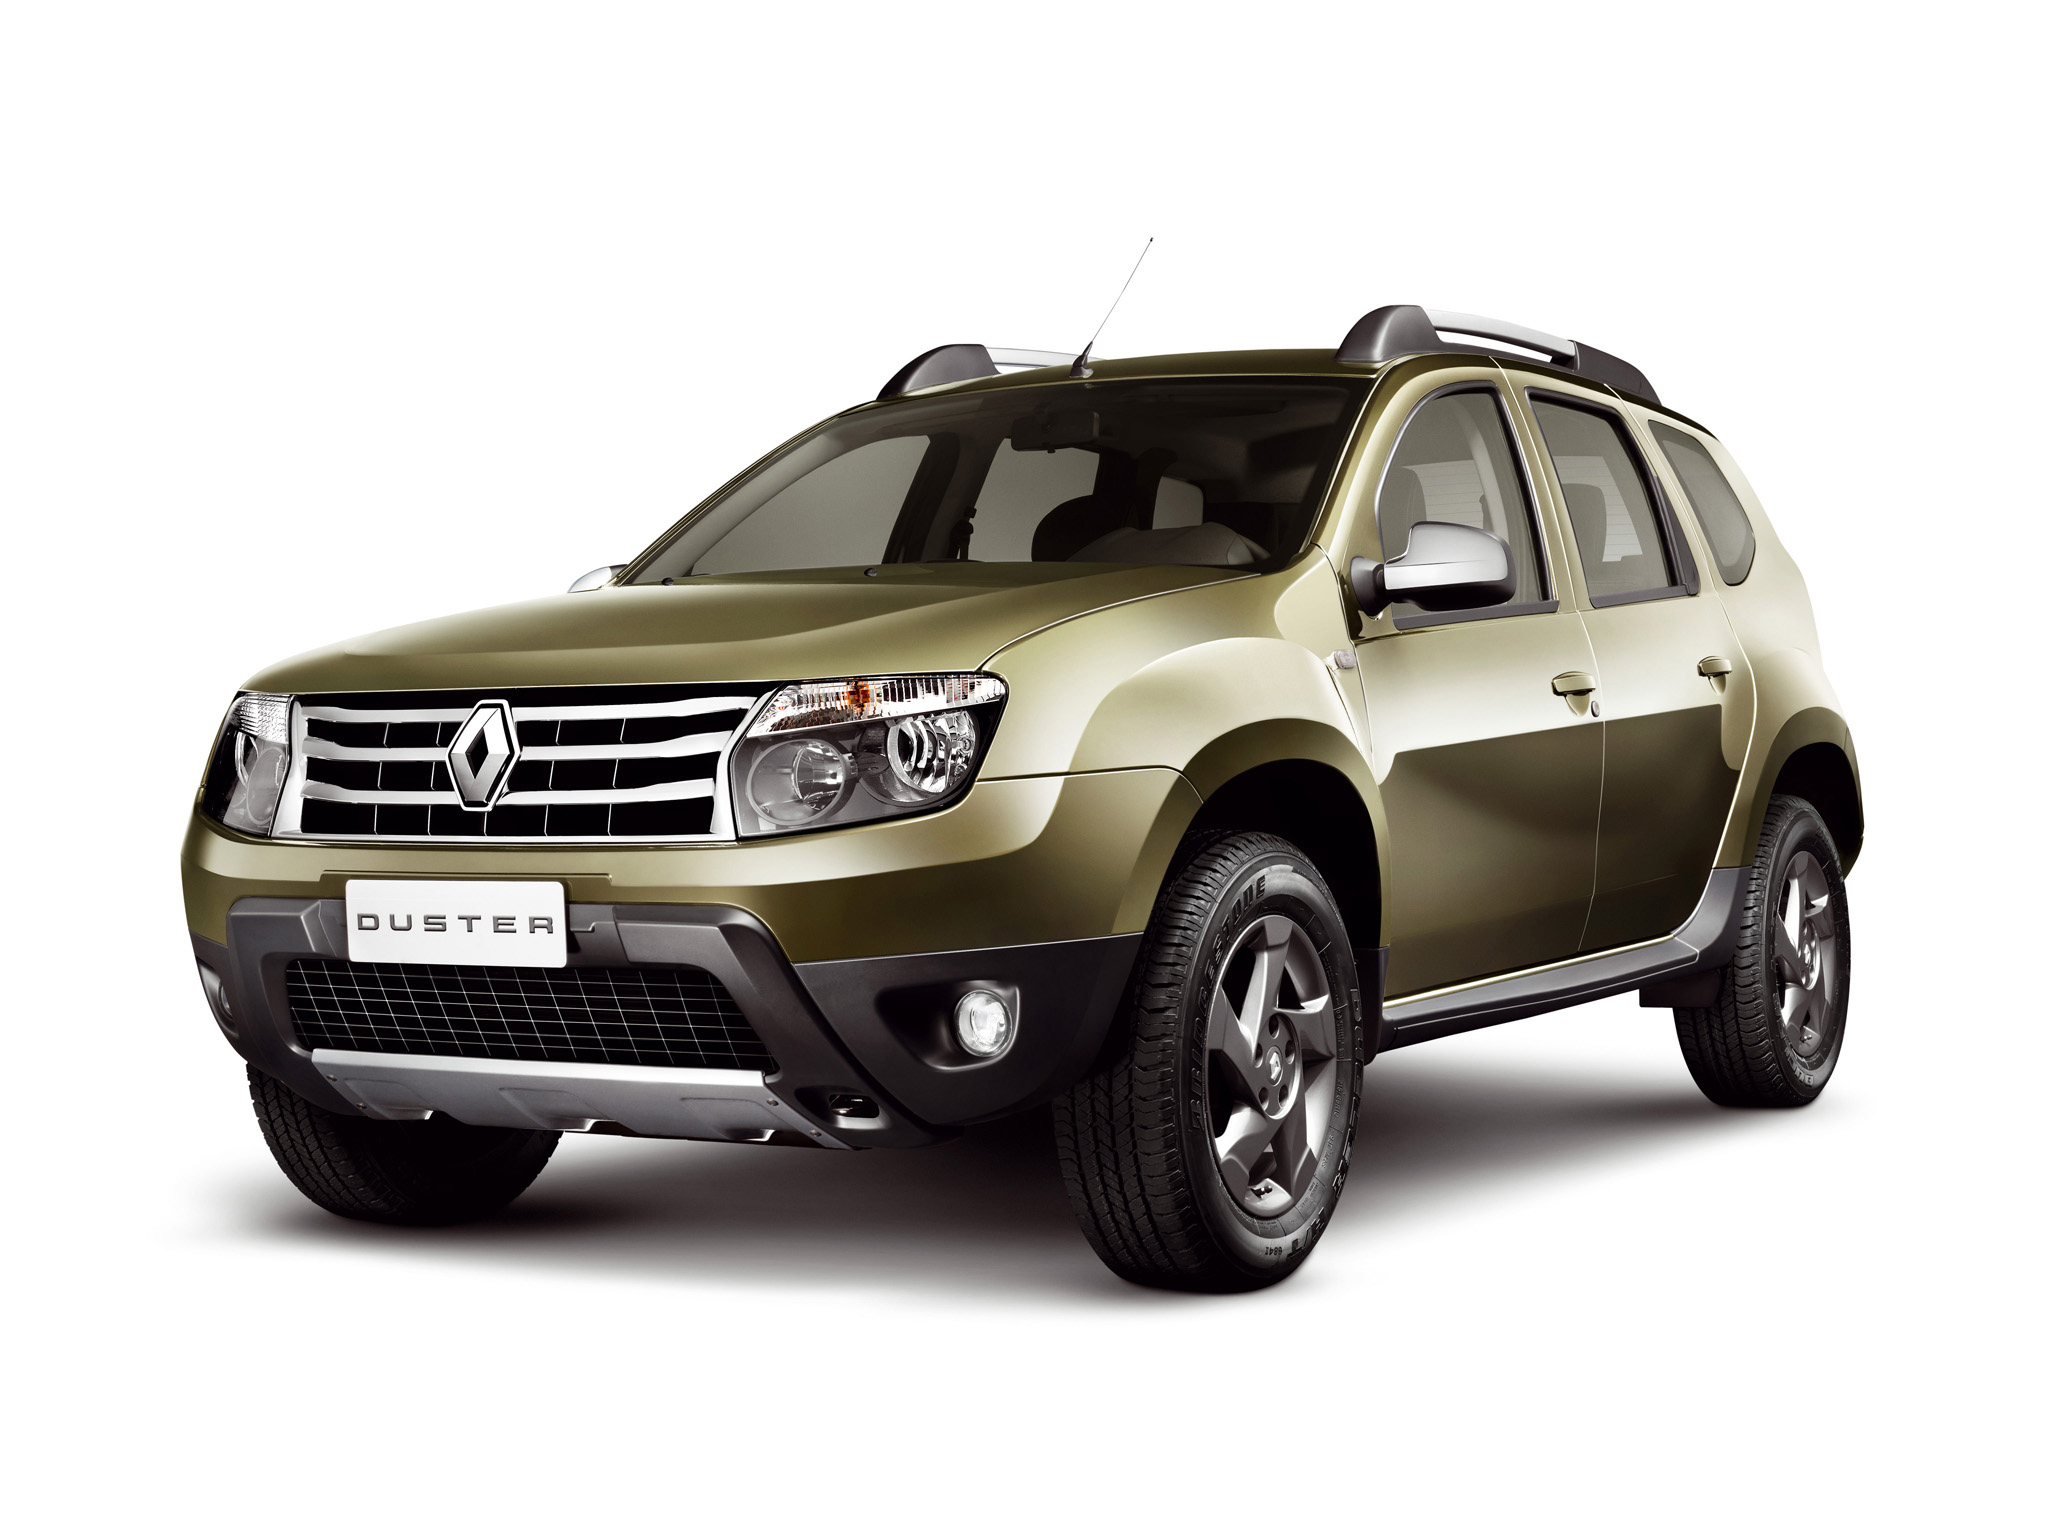 renault duster 2010 renault duster 2010 photo 21 car in pictures car photo gallery. Black Bedroom Furniture Sets. Home Design Ideas